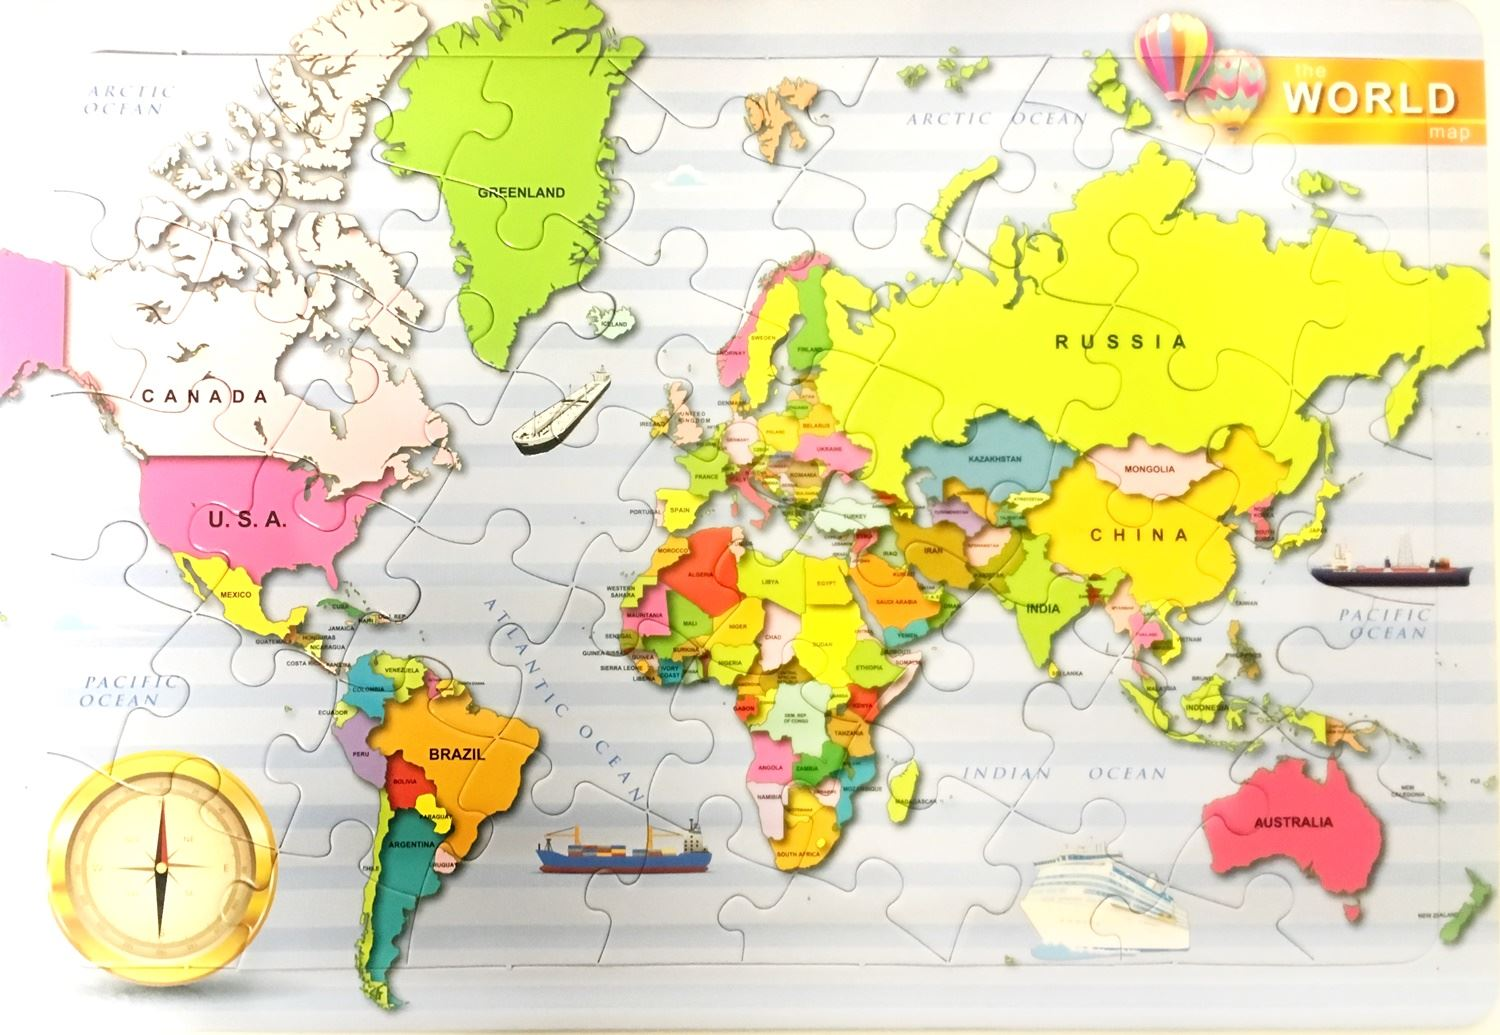 Jigsaw puzzle world map kids gift geography globe education atlas jigsaw puzzle world map kids gift geography globe education atlas learning gumiabroncs Images